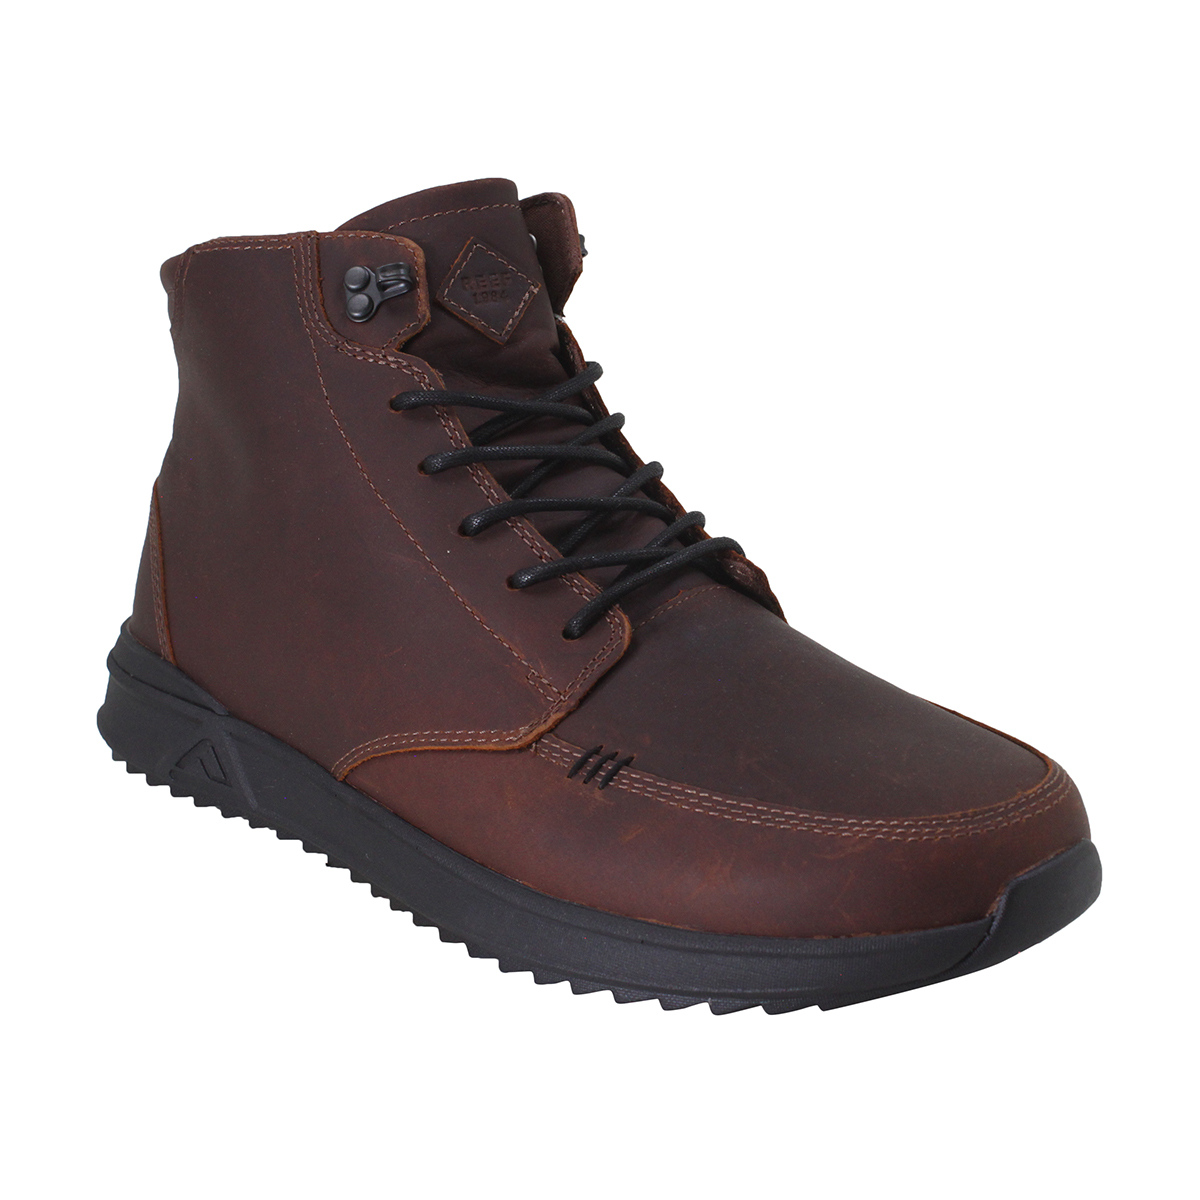 81b34c546cf4 Rover HI Boot WT - Chocolate BlackMens - Flying Point Surf